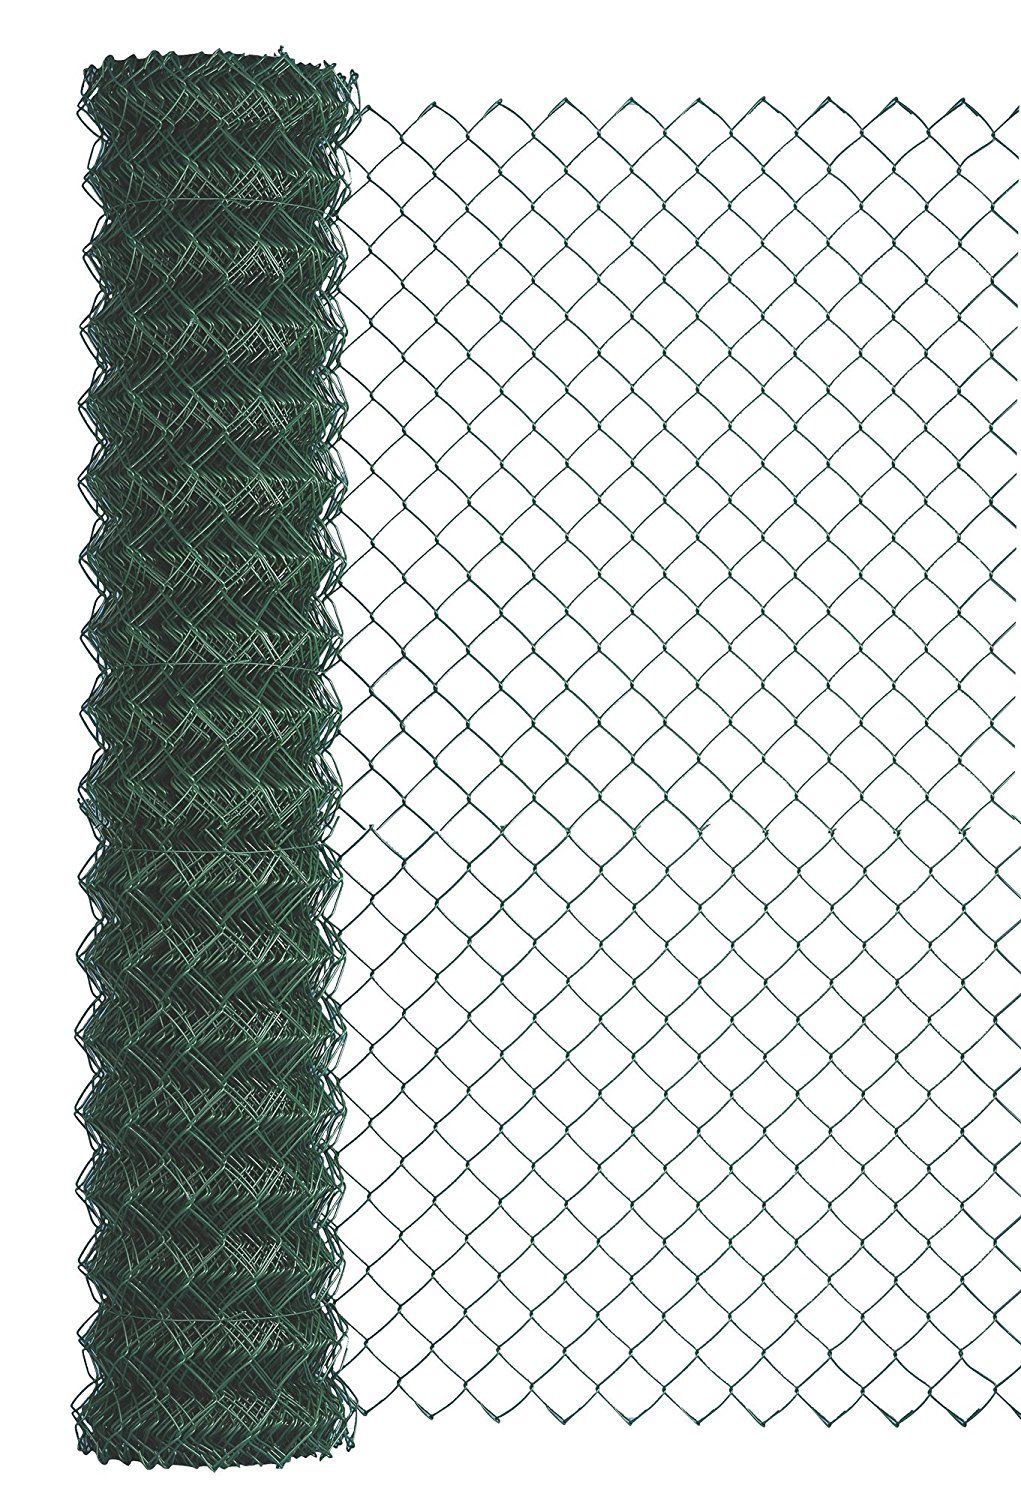 GAH-Alberts RAL 6005 Wire Mesh Fencing (Wire Thickness 2.8 mm, Mesh ...